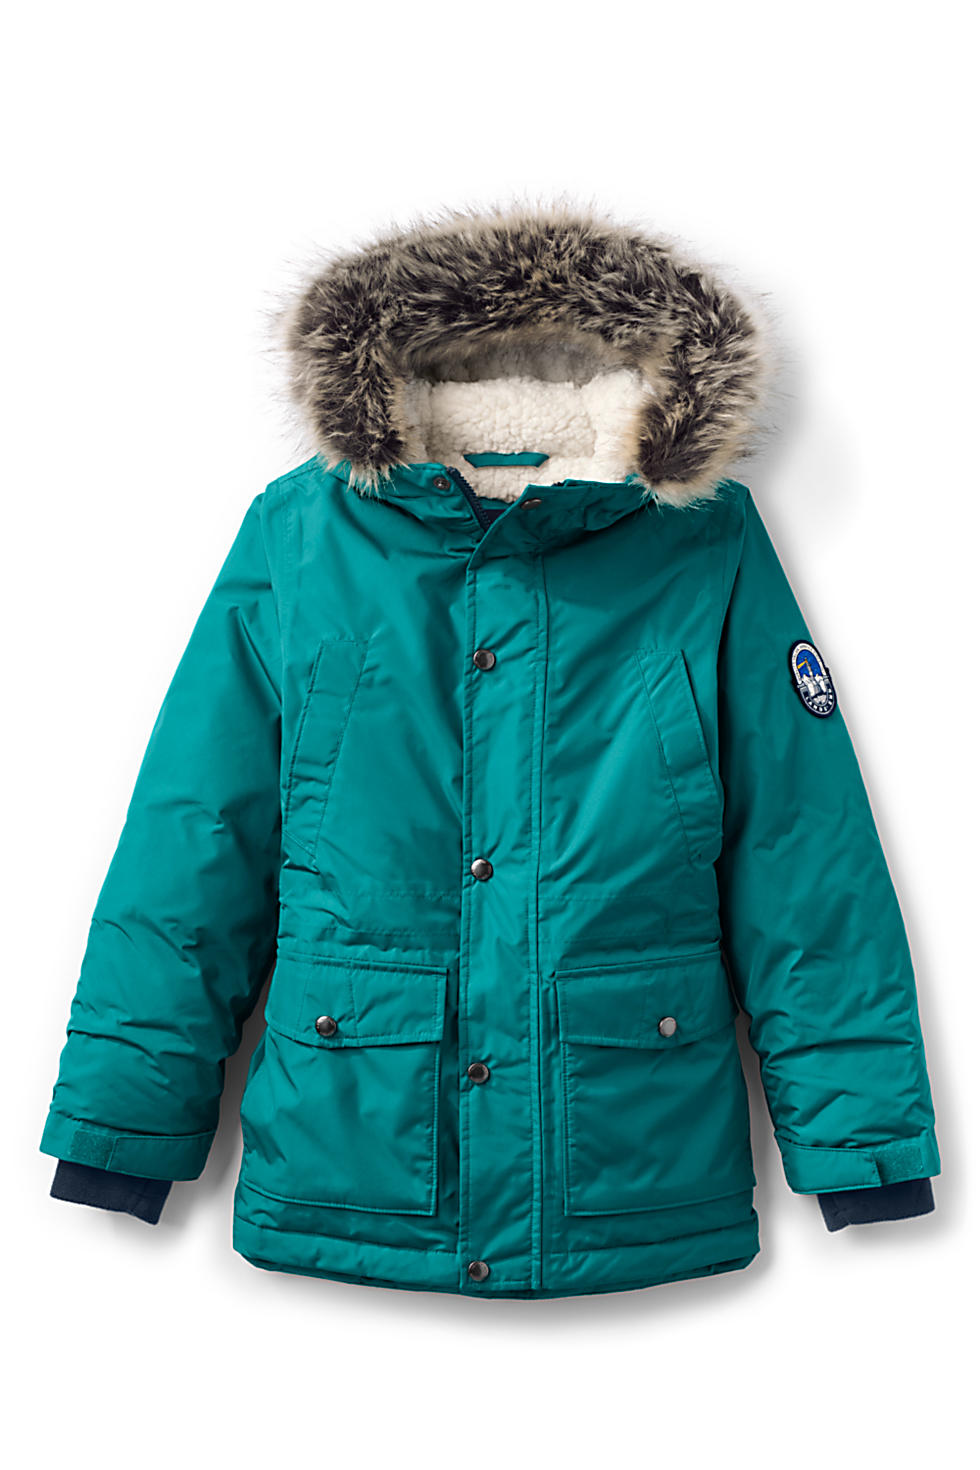 Lands End Kids Expedition Down Winter Parka (various colors/sizes)